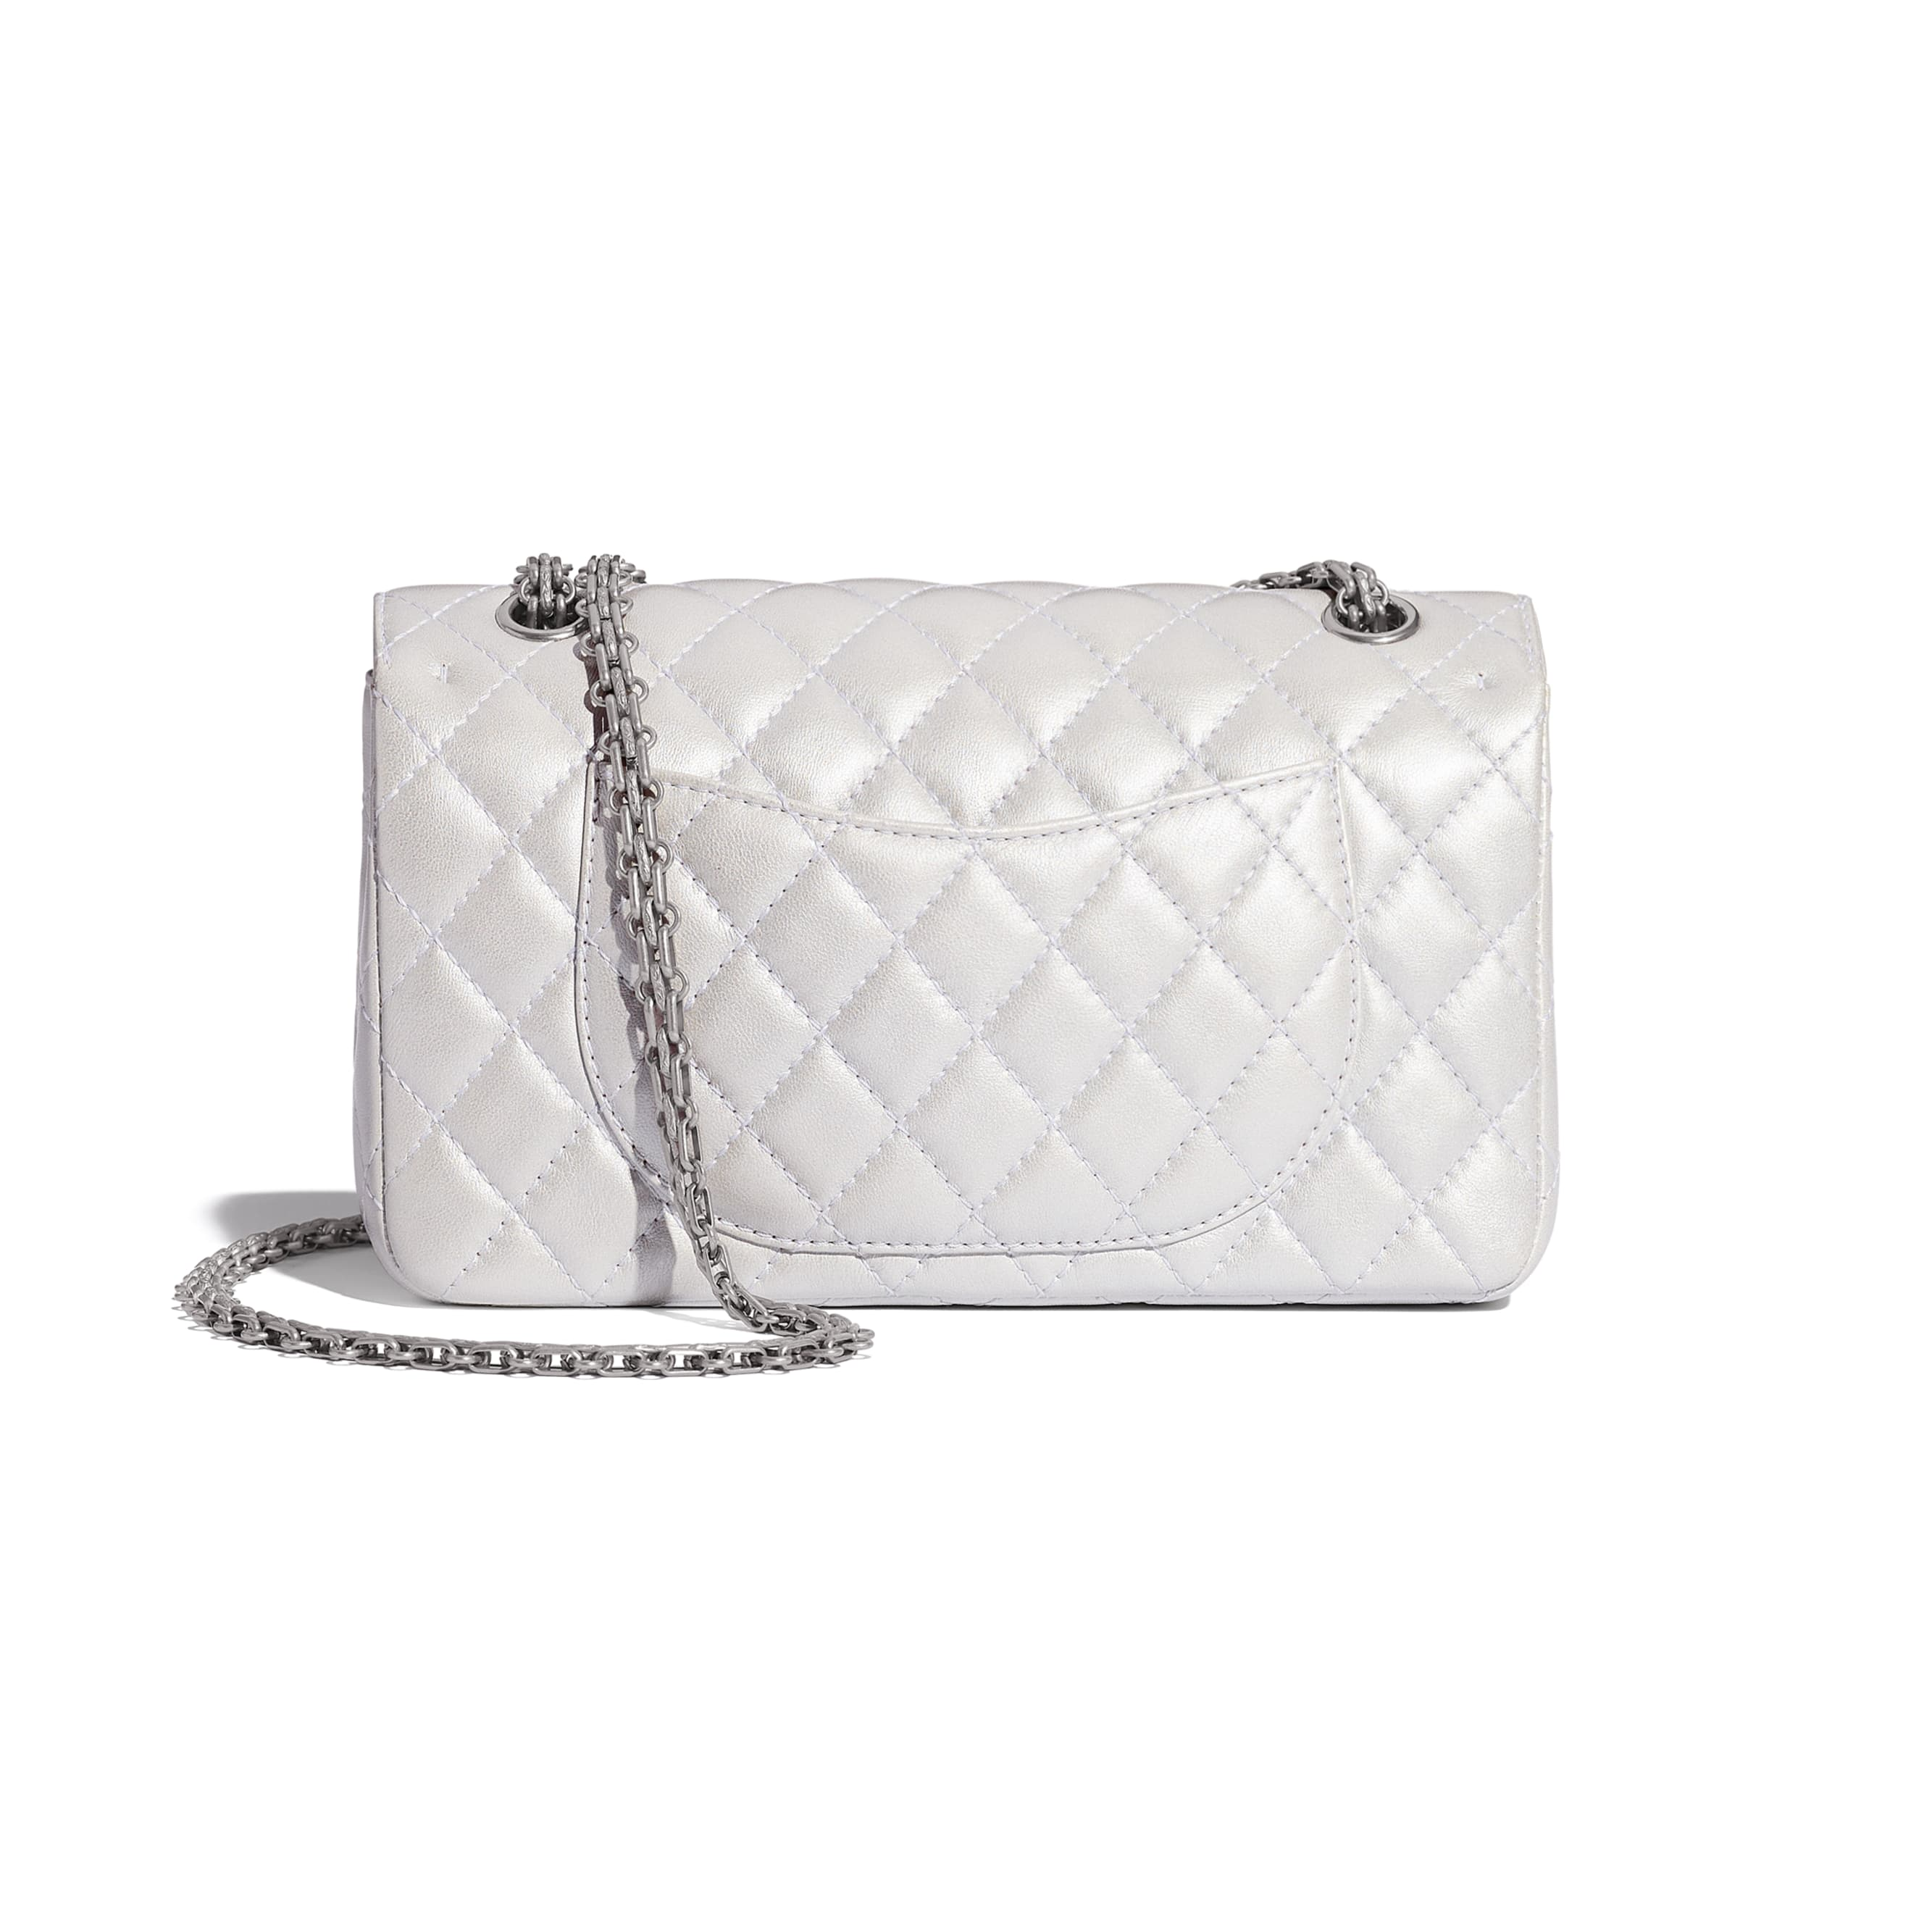 2.55 Handbag - White - Iridescent Lambskin & Silver-Tone Metal - CHANEL - Alternative view - see standard sized version